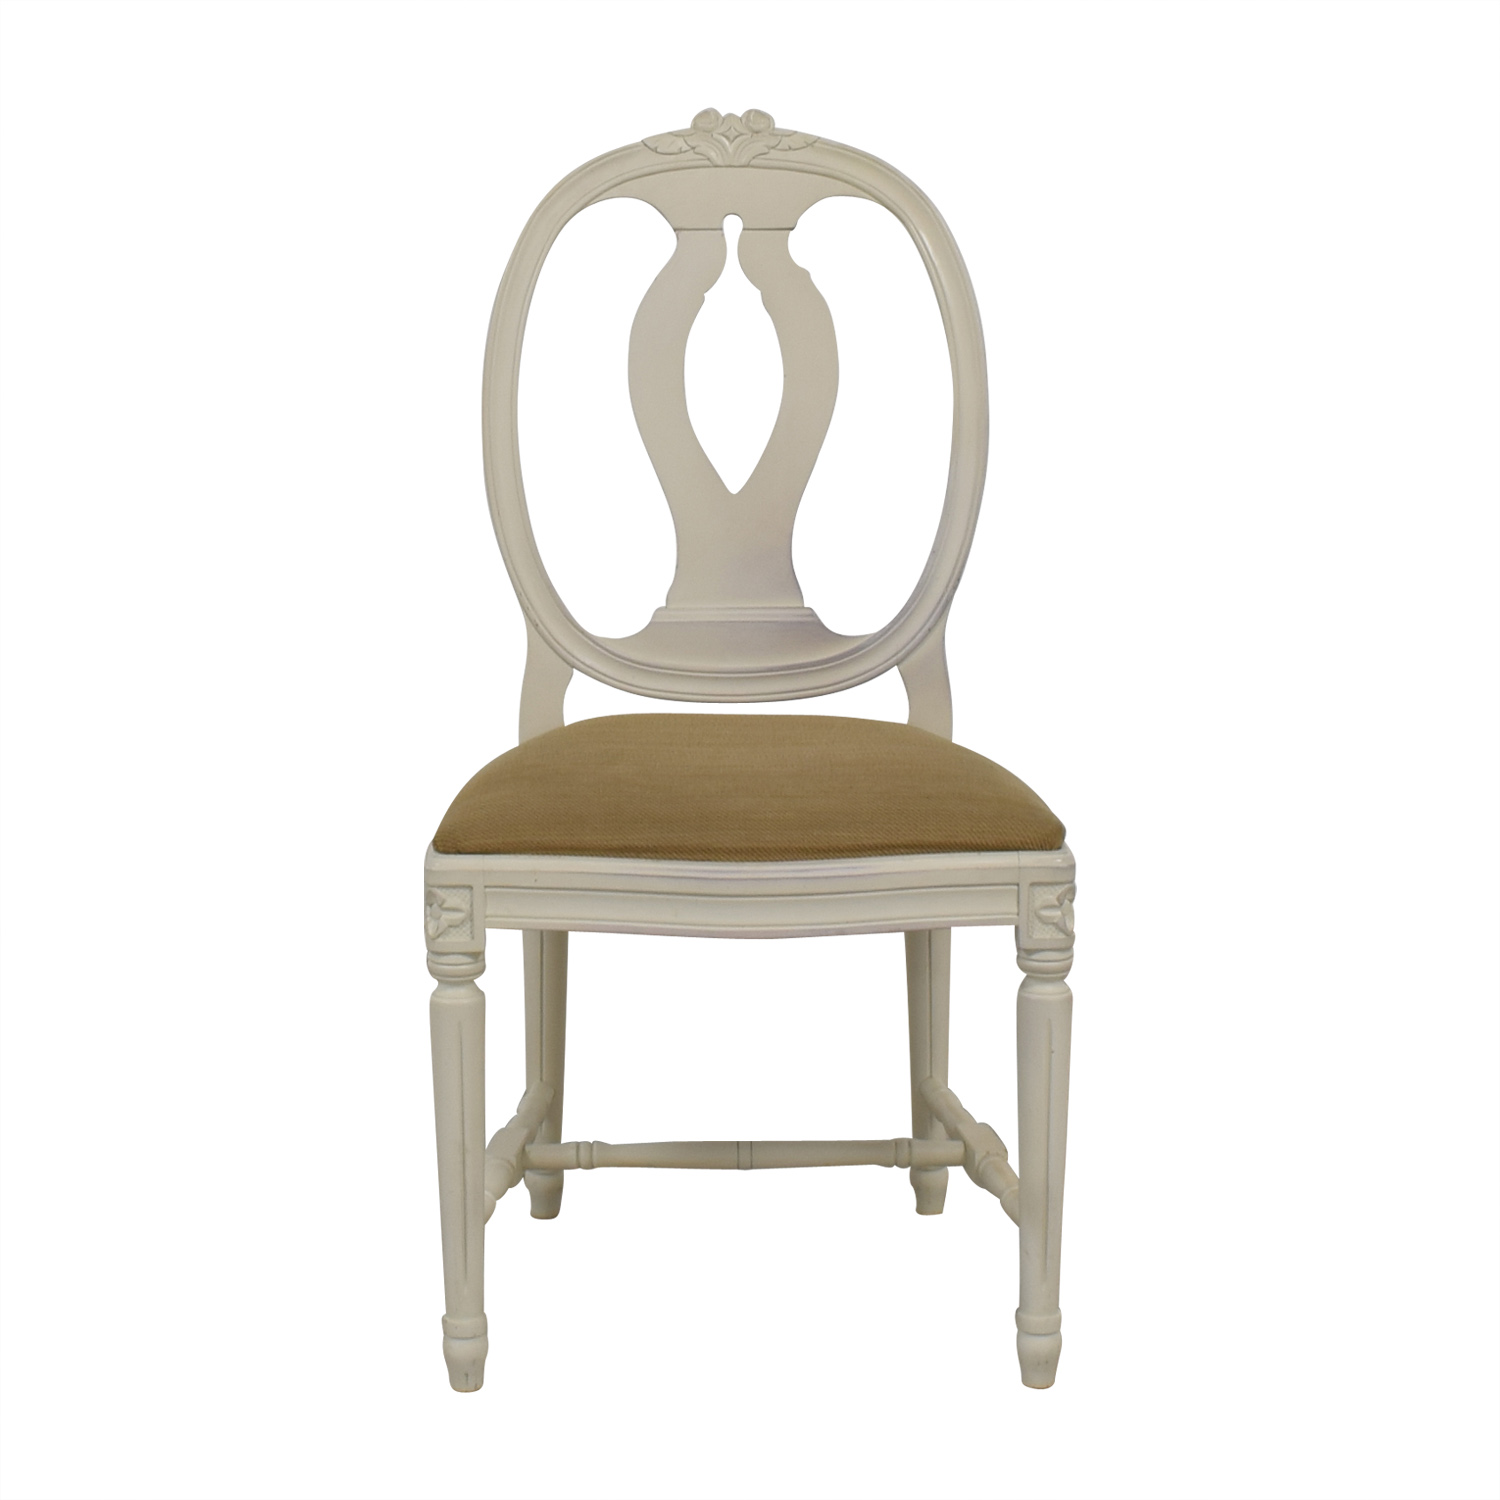 Swedish Blond Swedish Blond Country Distressed Cream Chair discount